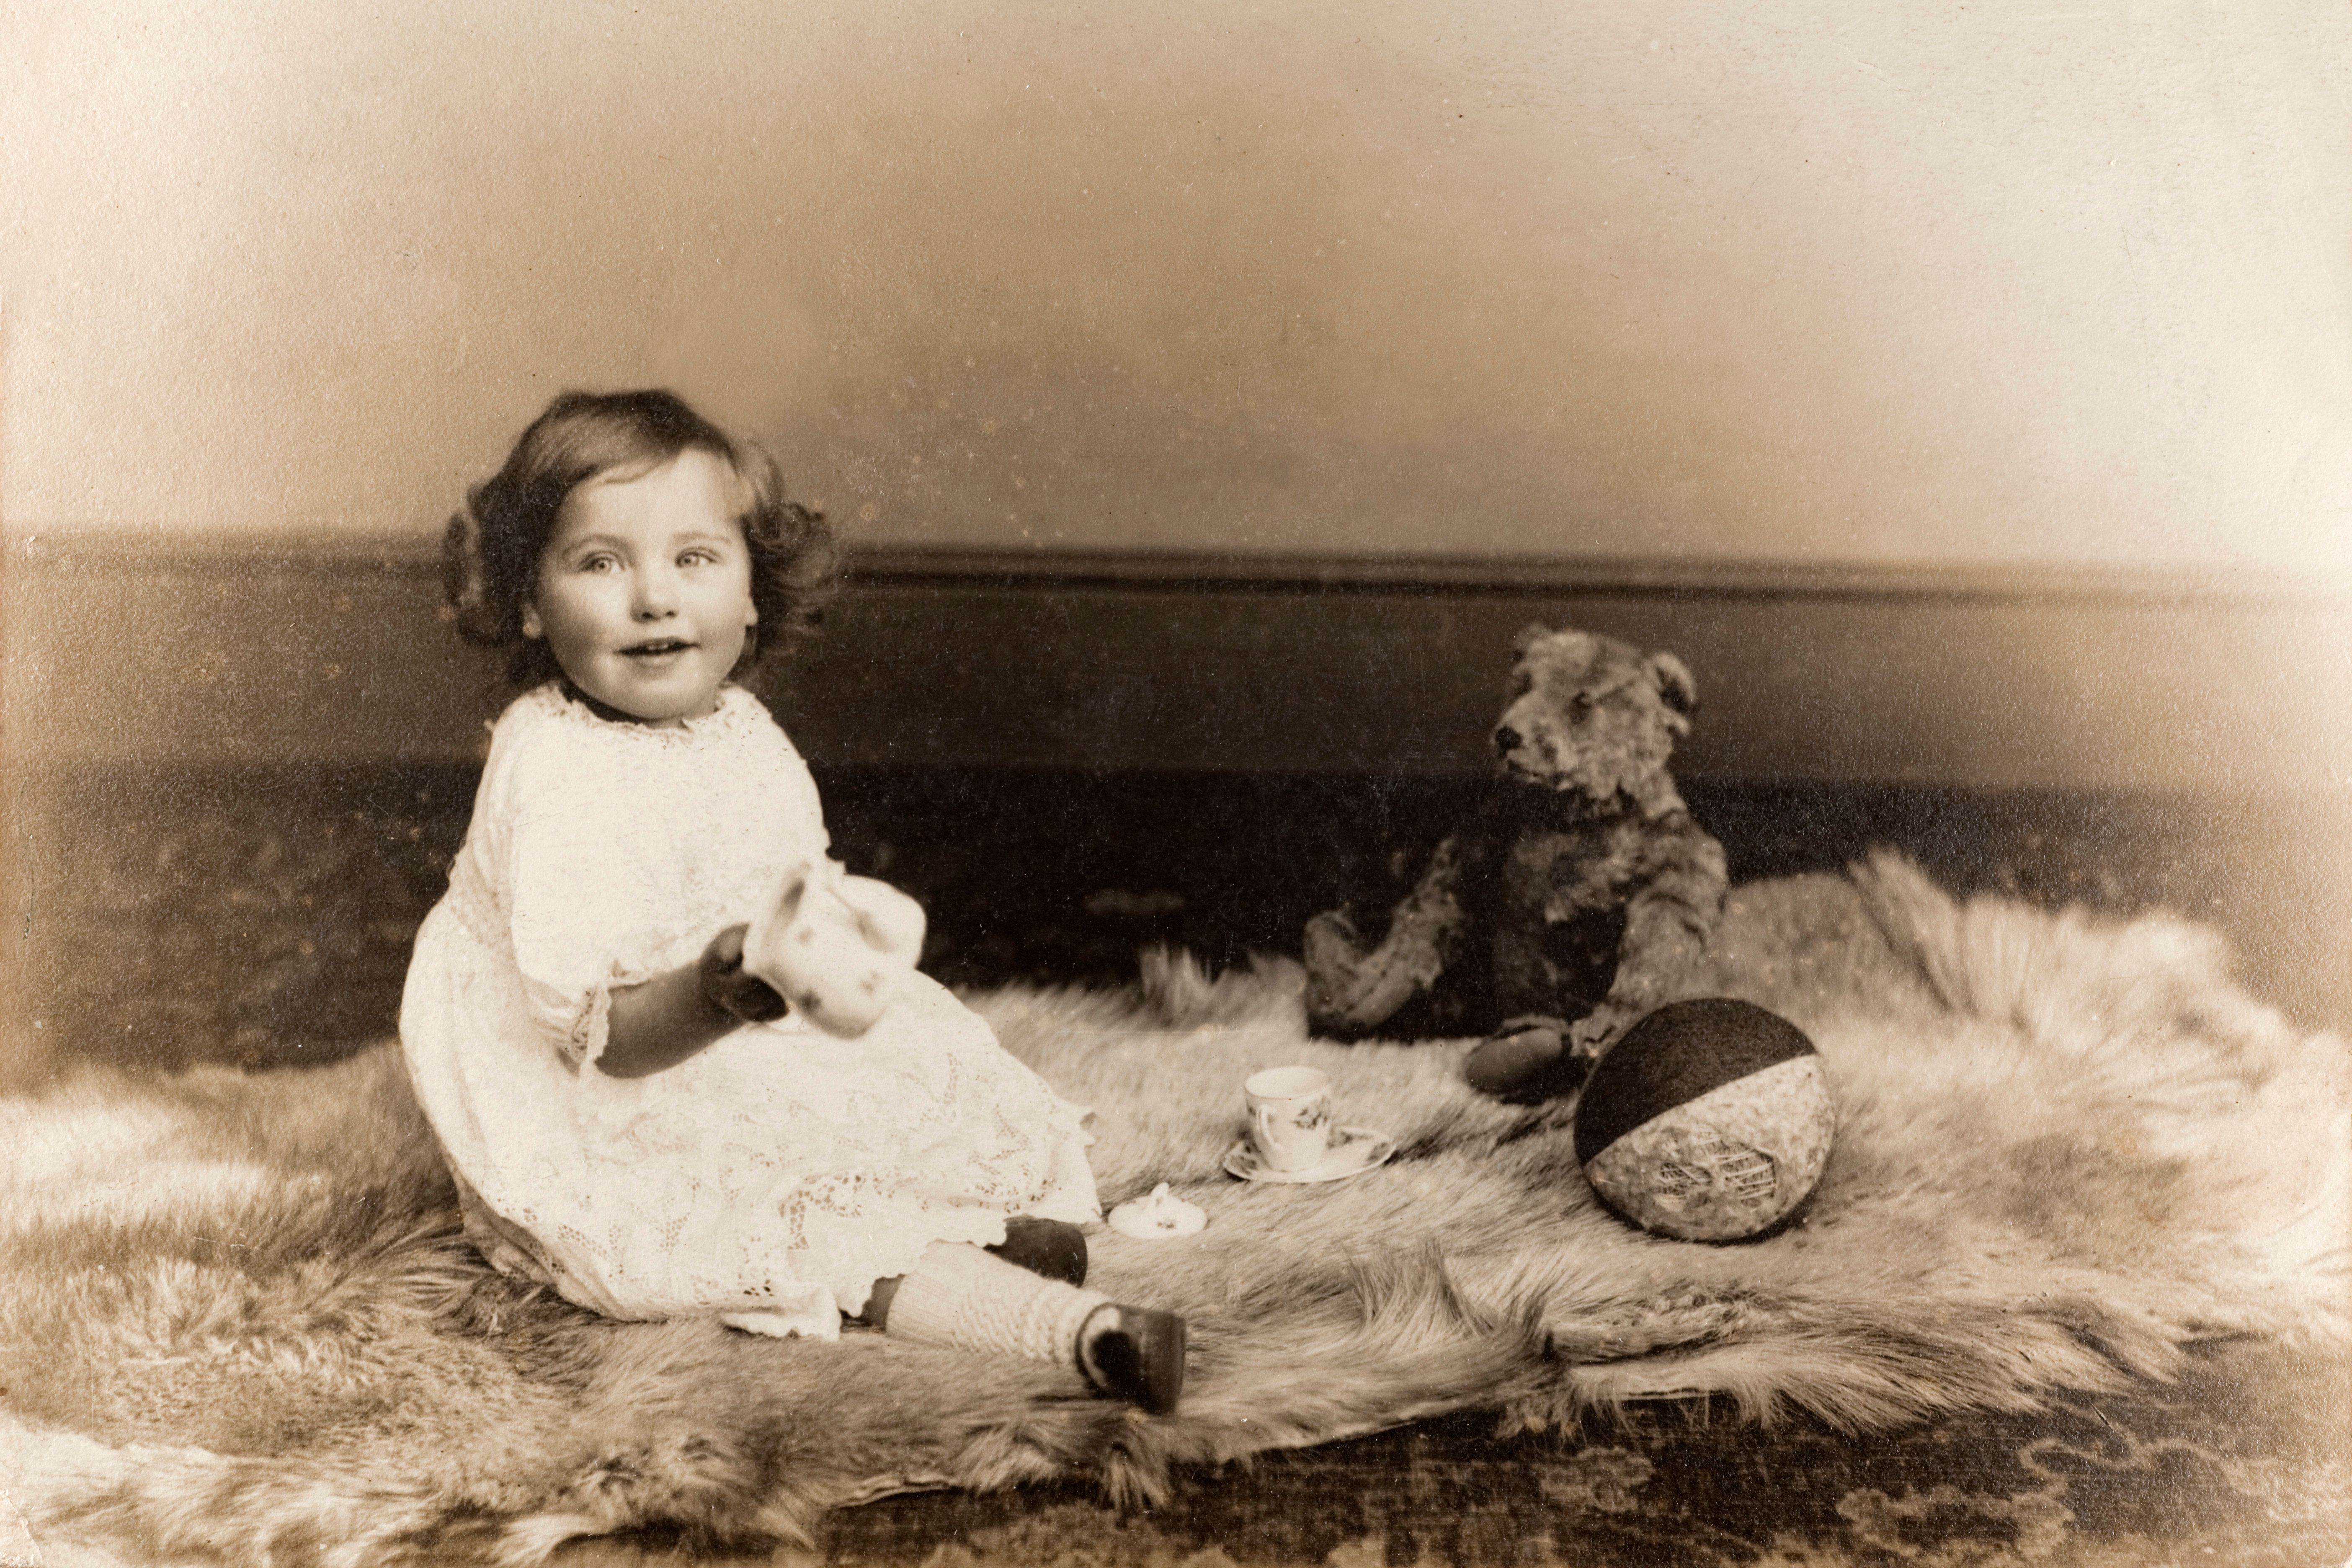 'Vintage black and white photograph of a baby girl sitting on an animal skin rug, with a teddy bear and toys, circa 1910. Some dust and scratches that reflect age of original image. See my vintage images lightbox, including similar baby boy shot...'